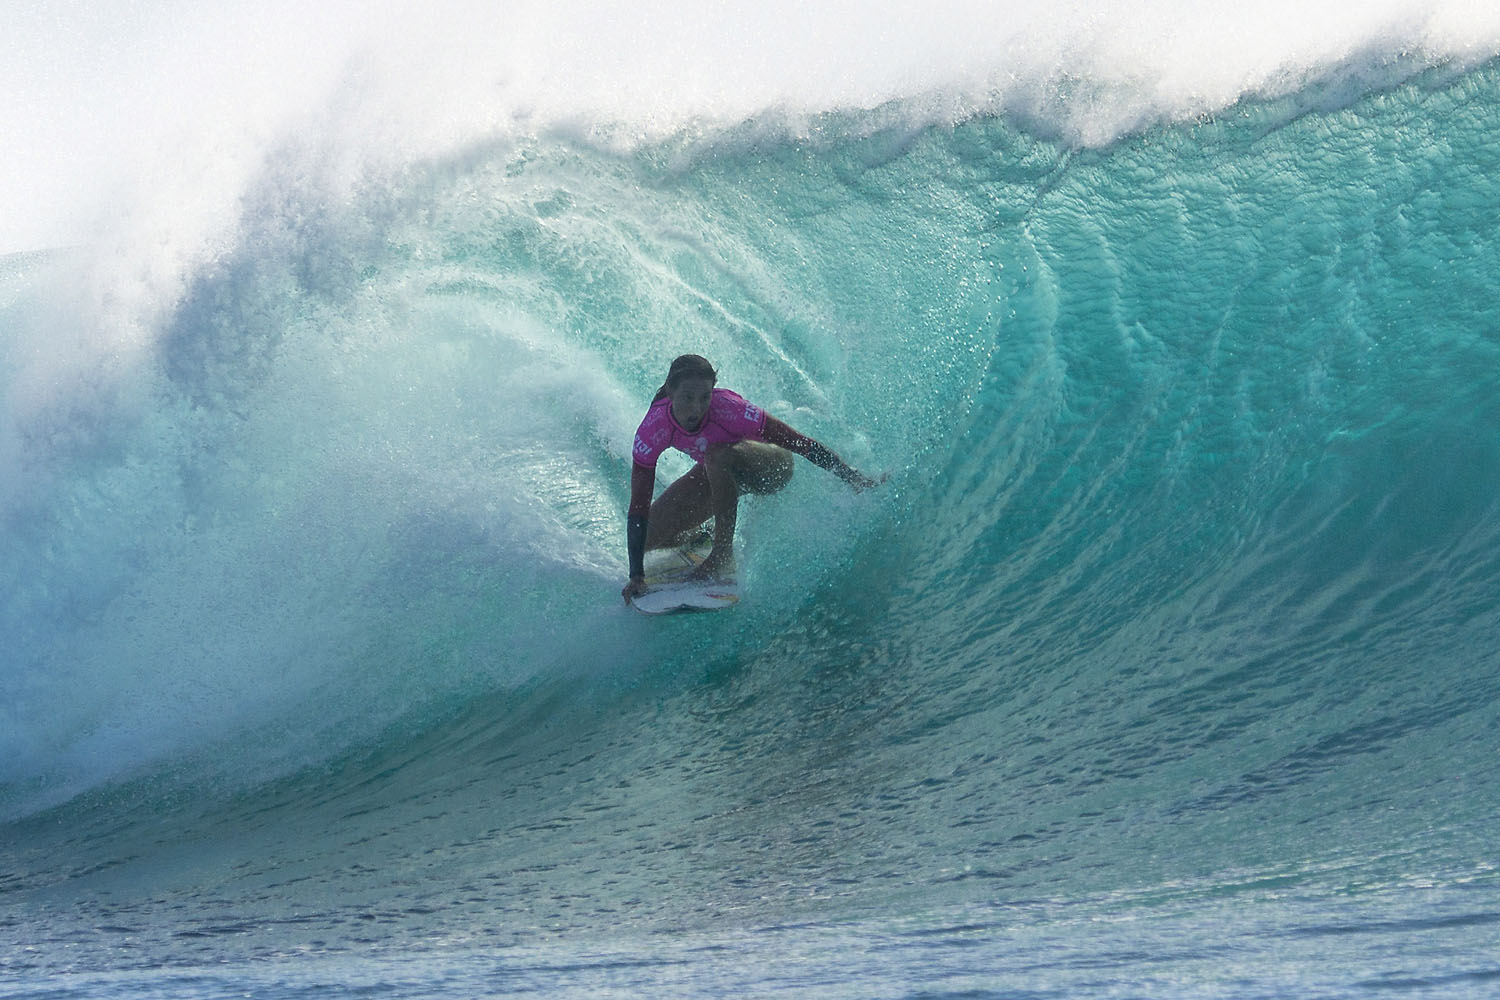 Fitzgibbons tries to keep up with Stephanie Gilmore in Round 3 of the Women's Fiji Pro, coming in second in the third heat with a score of 15.07.